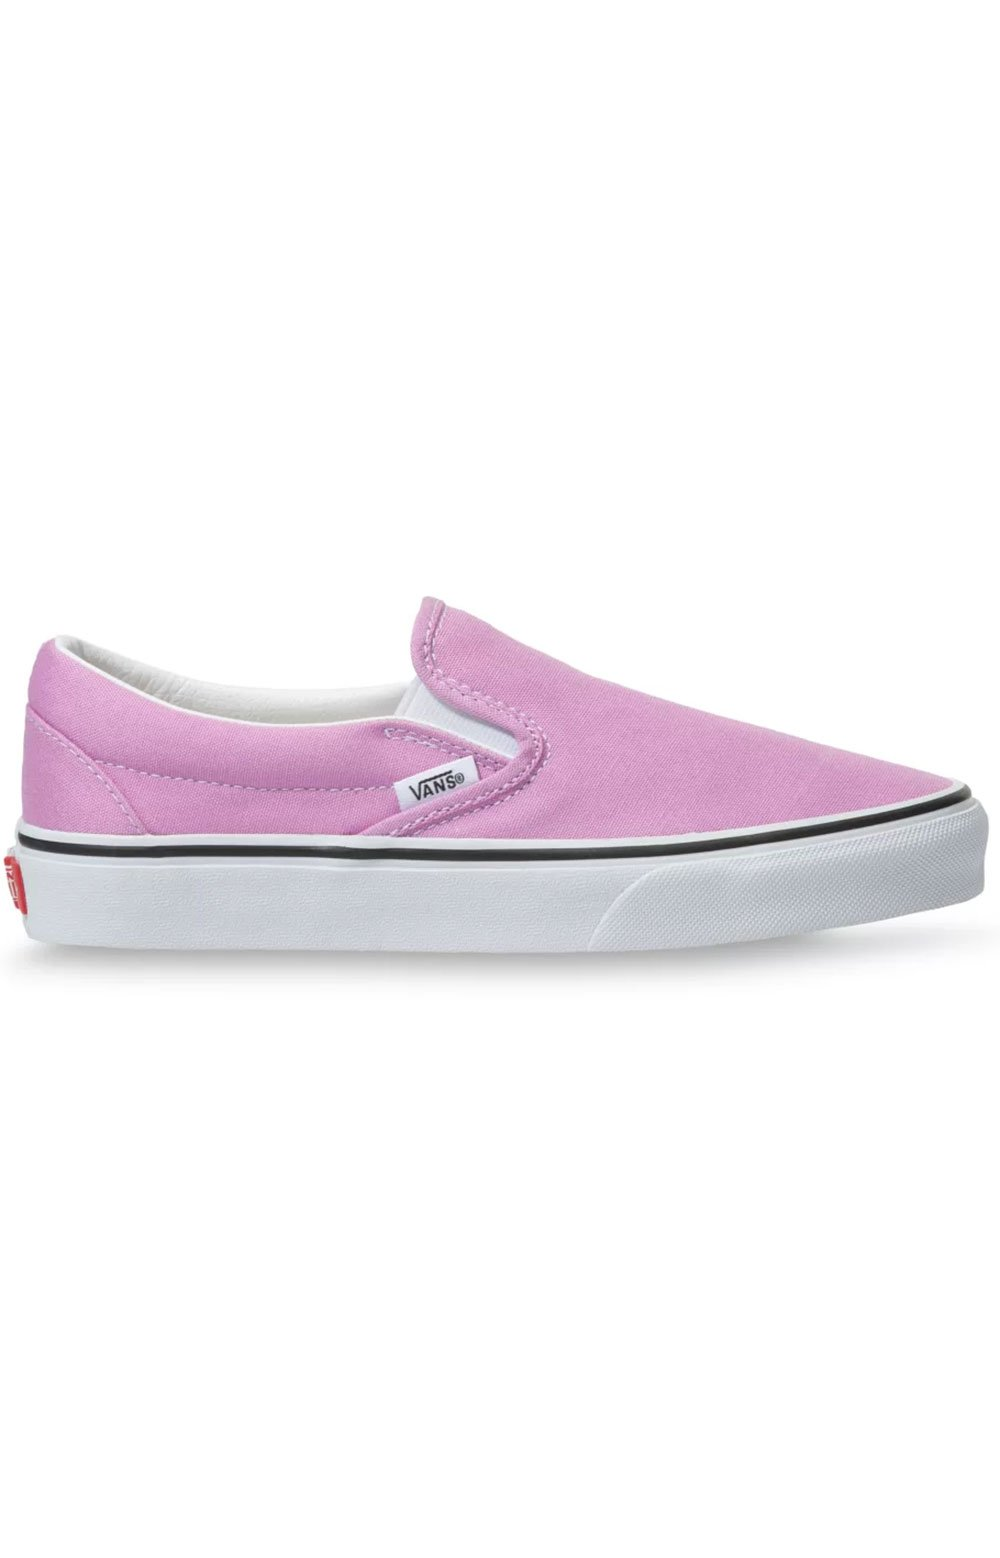 (3TB3SQ) Classic Slip-On Shoes - Orchid/True White